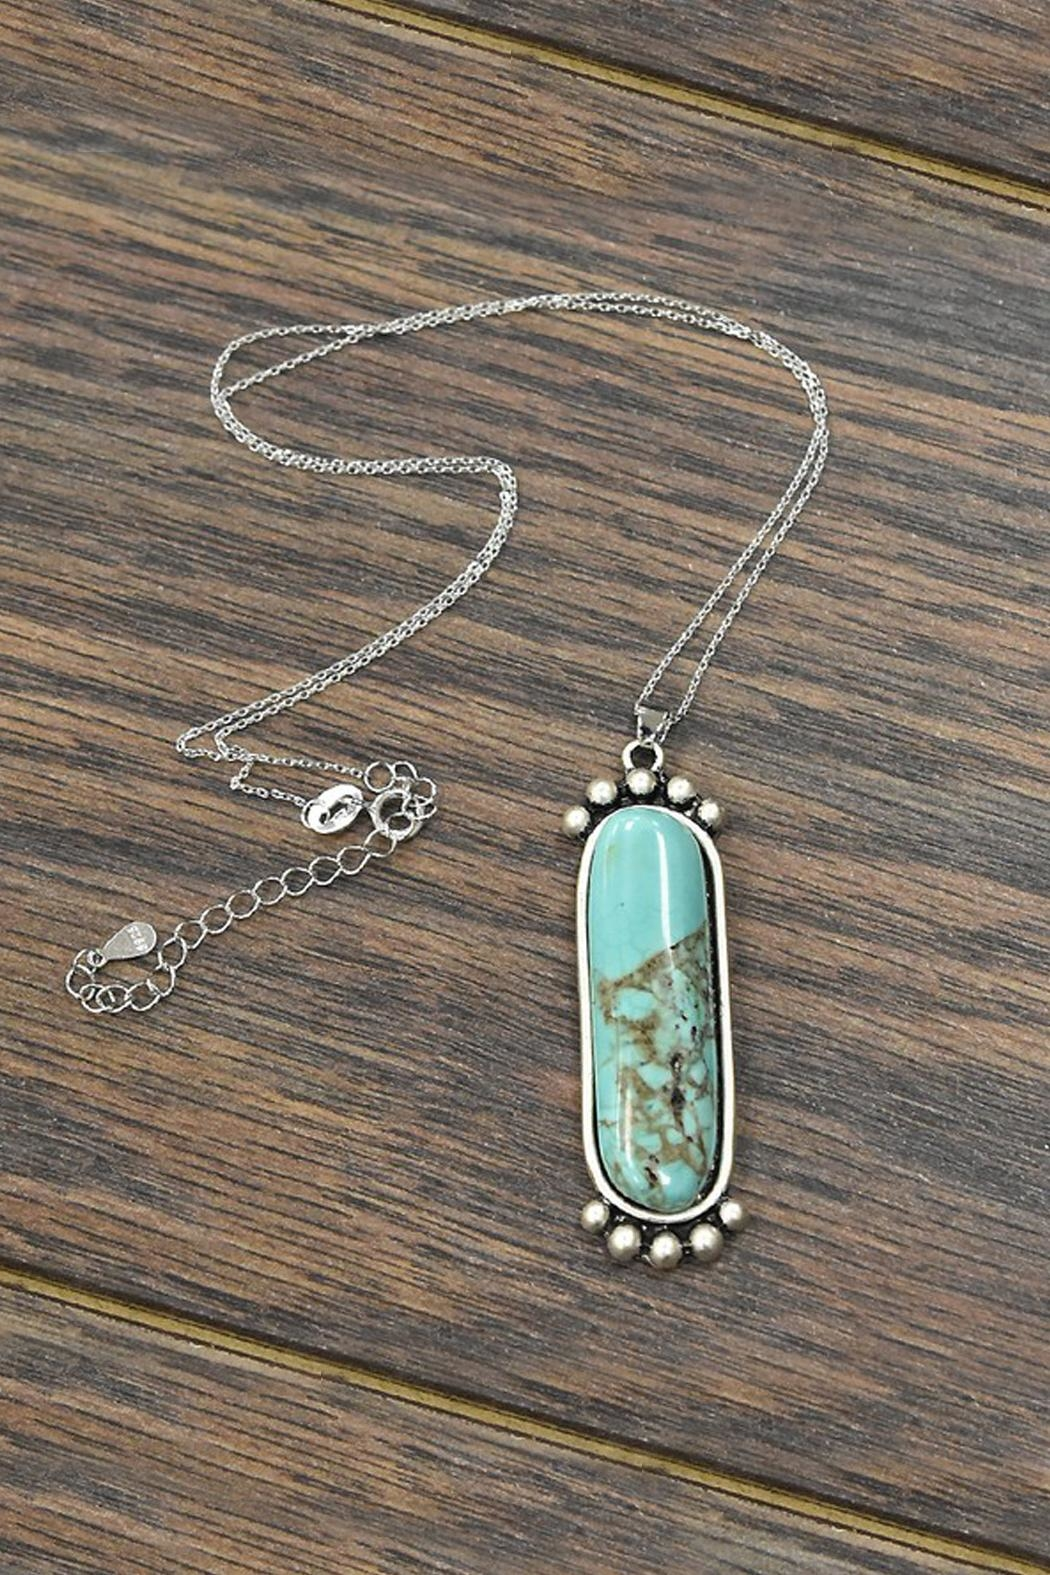 JChronicles Sterling-Silver-Chain With Natural-Turquoise-Pendant-Necklace - Main Image